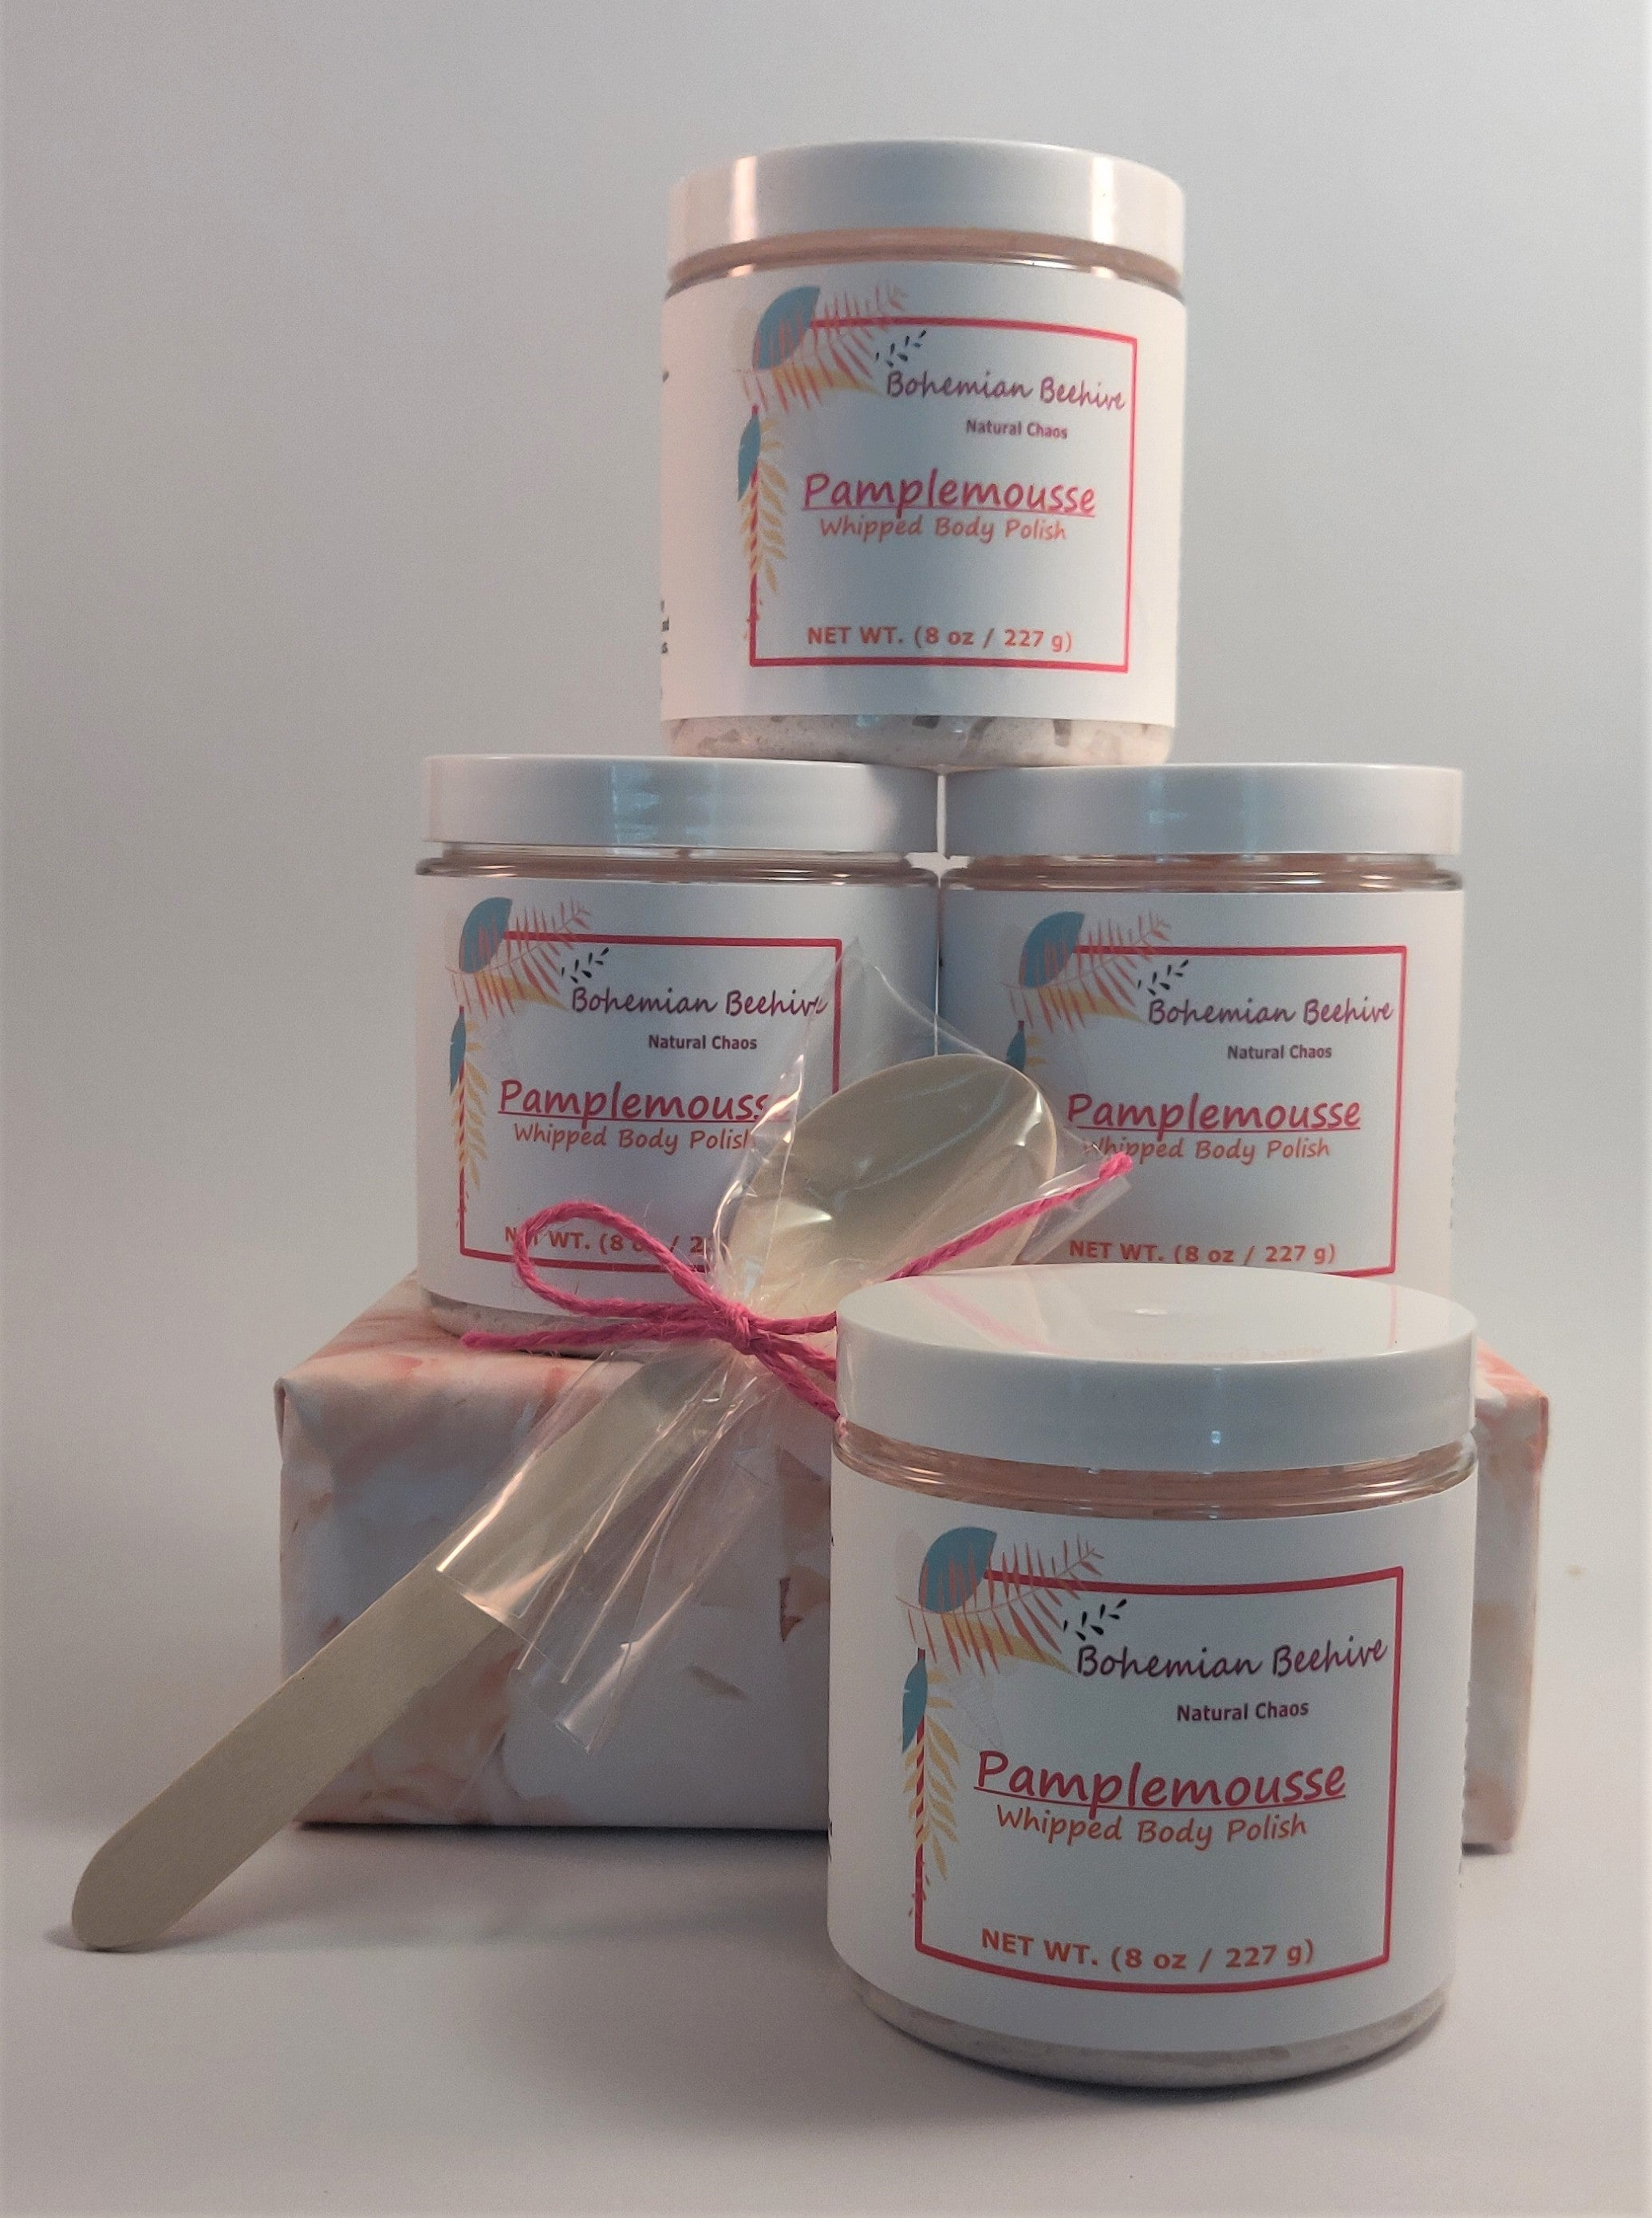 PAMPLEMOUSSE WHIPPED BODY POLISH